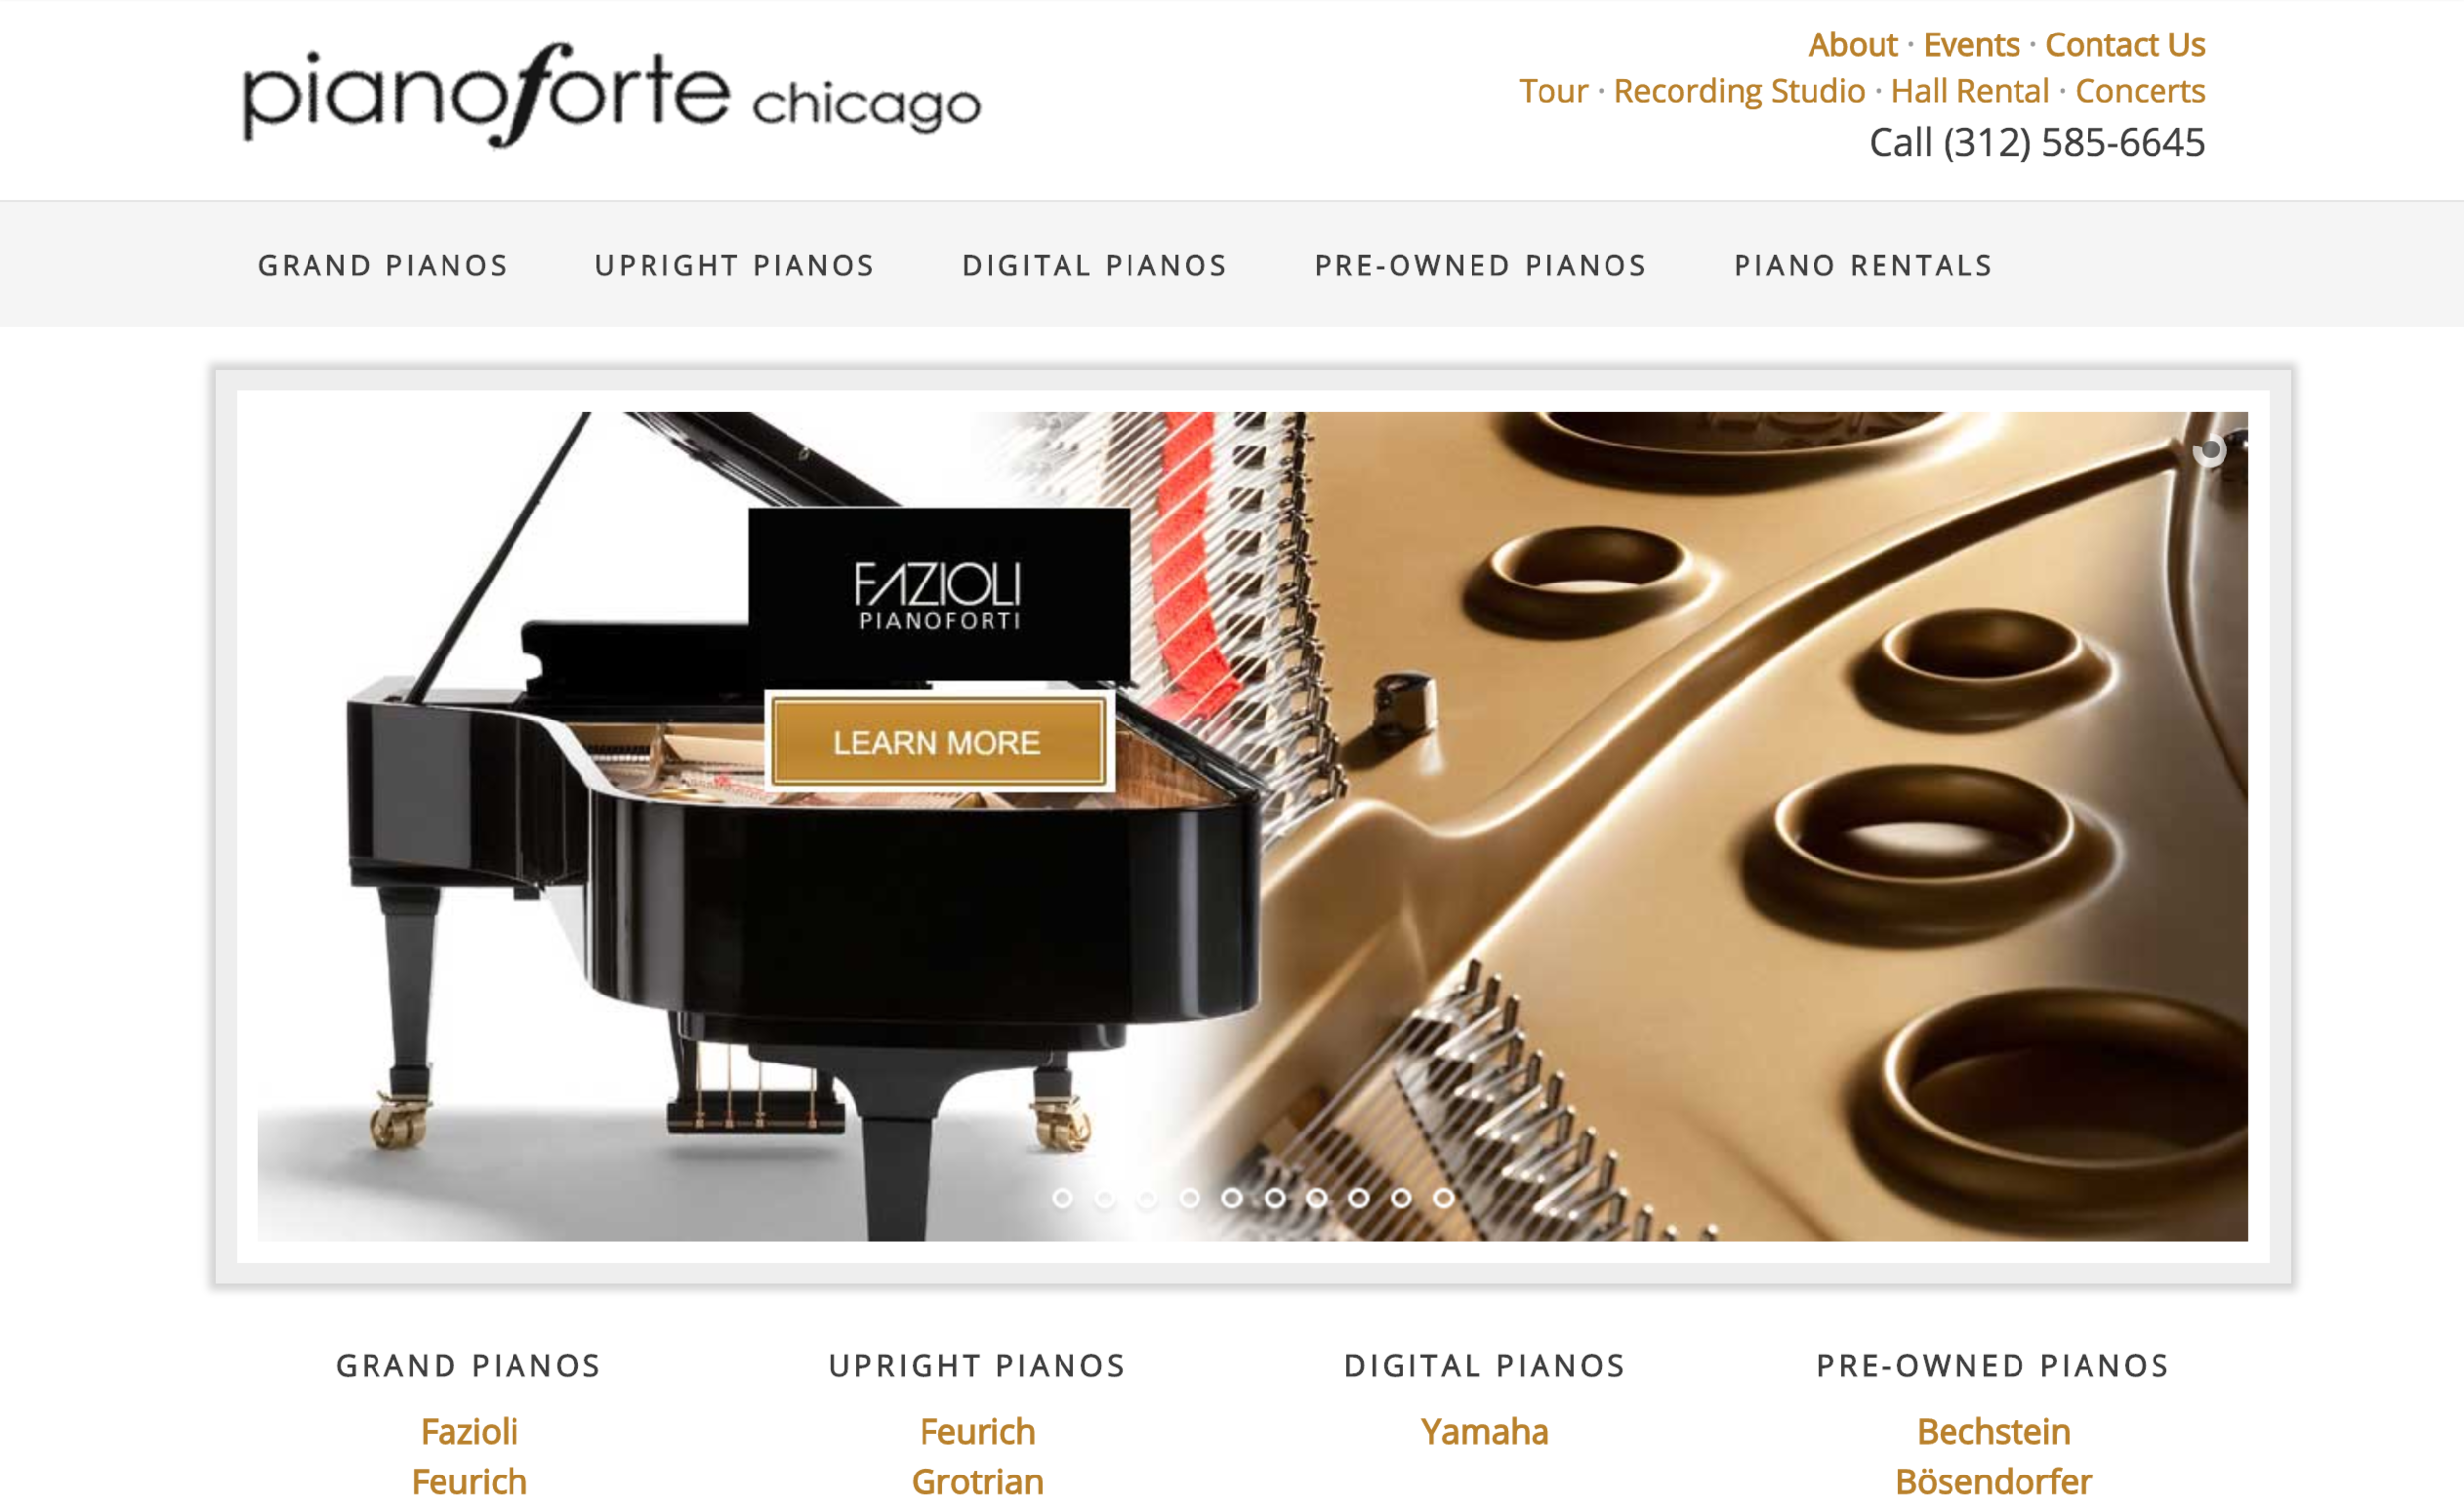 """""""  PianoForte Chicago   was started with the idea of promoting and making available the line of Fazioli pianos to the discerning public but quickly grew into a piano store with a wide range of instruments and piano-related services including accessories, recording, rentals, student performances, and lessons. Since its inception, PianoForte has evolved into a specialized piano boutique with a focus on selecting fine instruments at various price levels."""""""